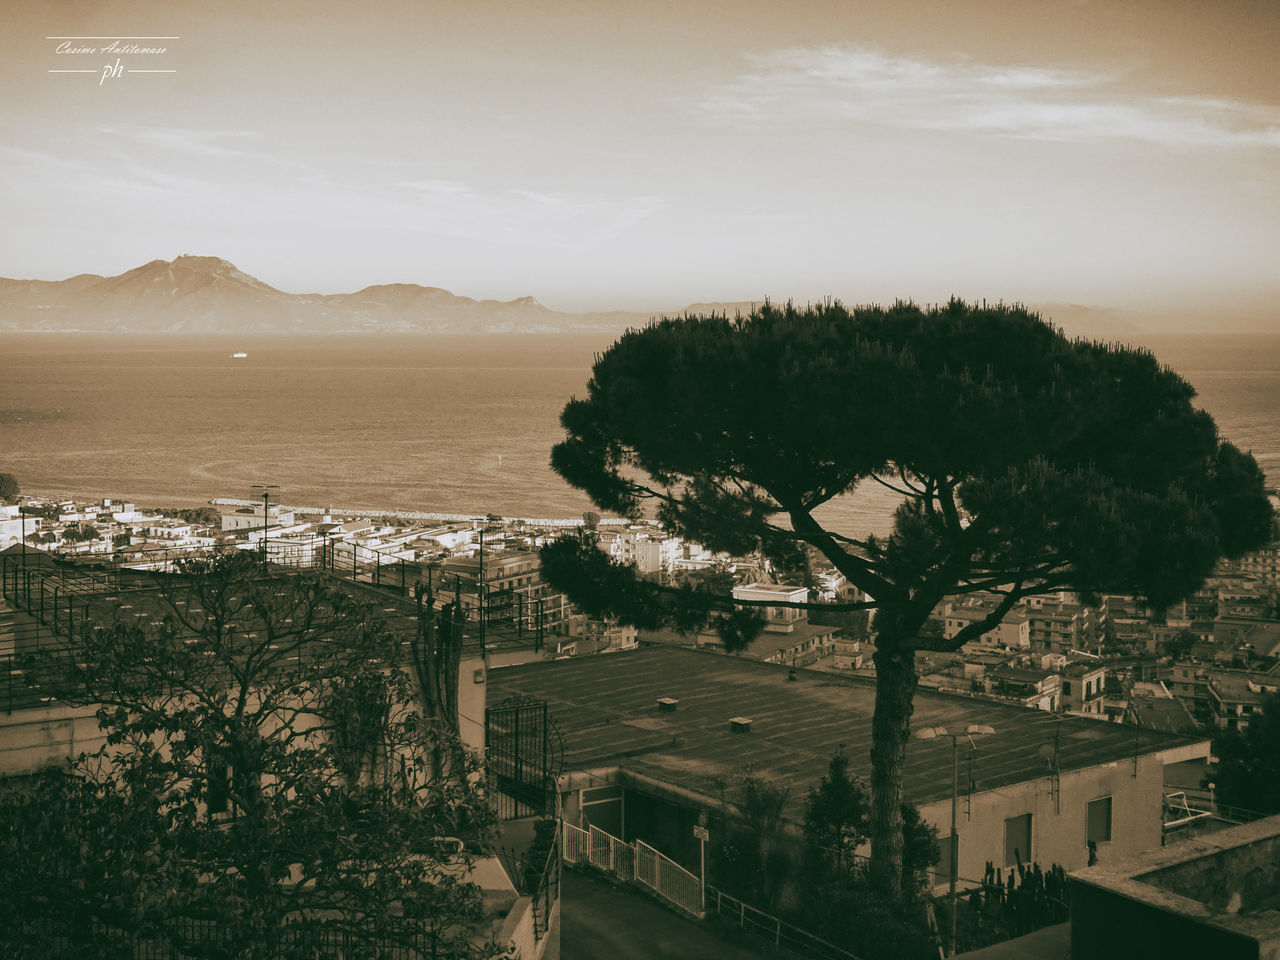 Architecture Beauty In Nature Building Exterior Built Structure City Cityscape Day High Angle View House Landscape Mountain Napoli Napoli ❤ Napoliphotoproject Nature No People Outdoors Residential Building Scenics Sea Sky Town Tree Water